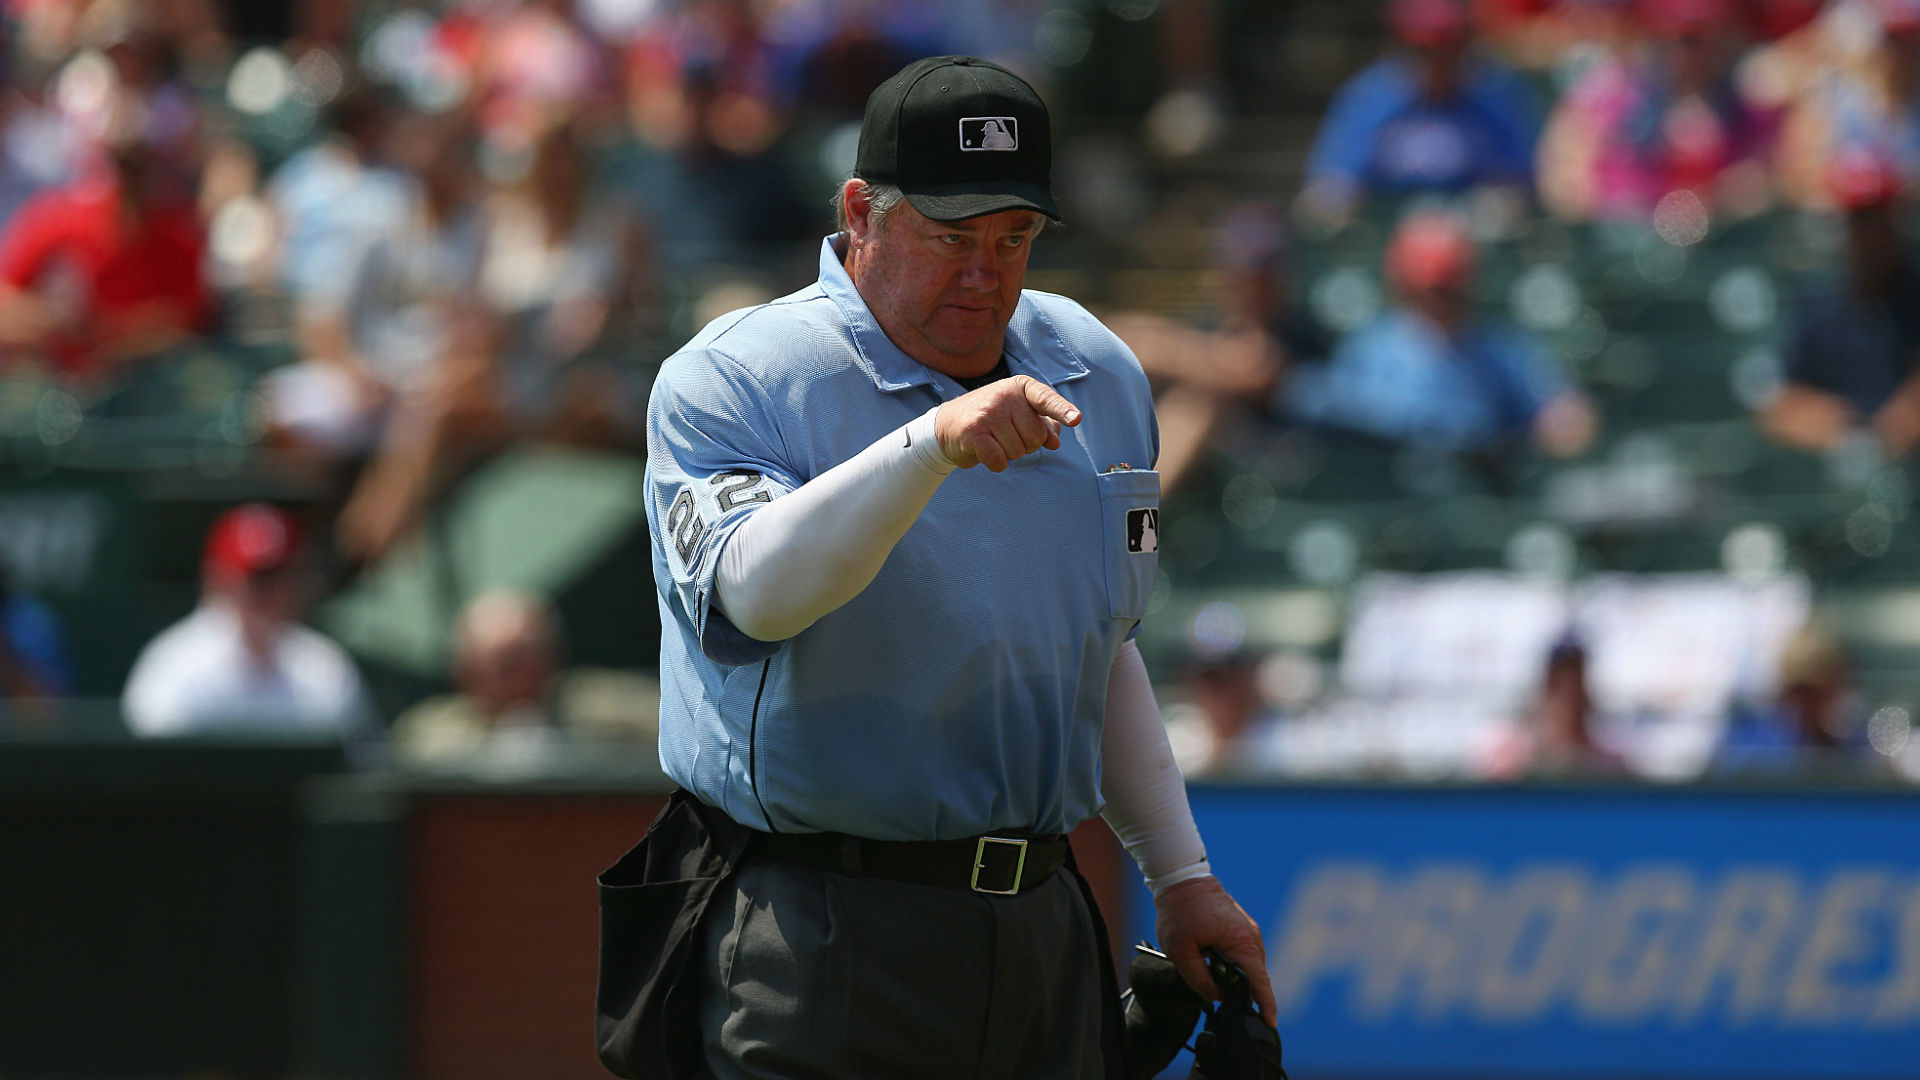 Umpire Joe West Suspended Three Games for Calling Adrian Beltre Biggest Complainer